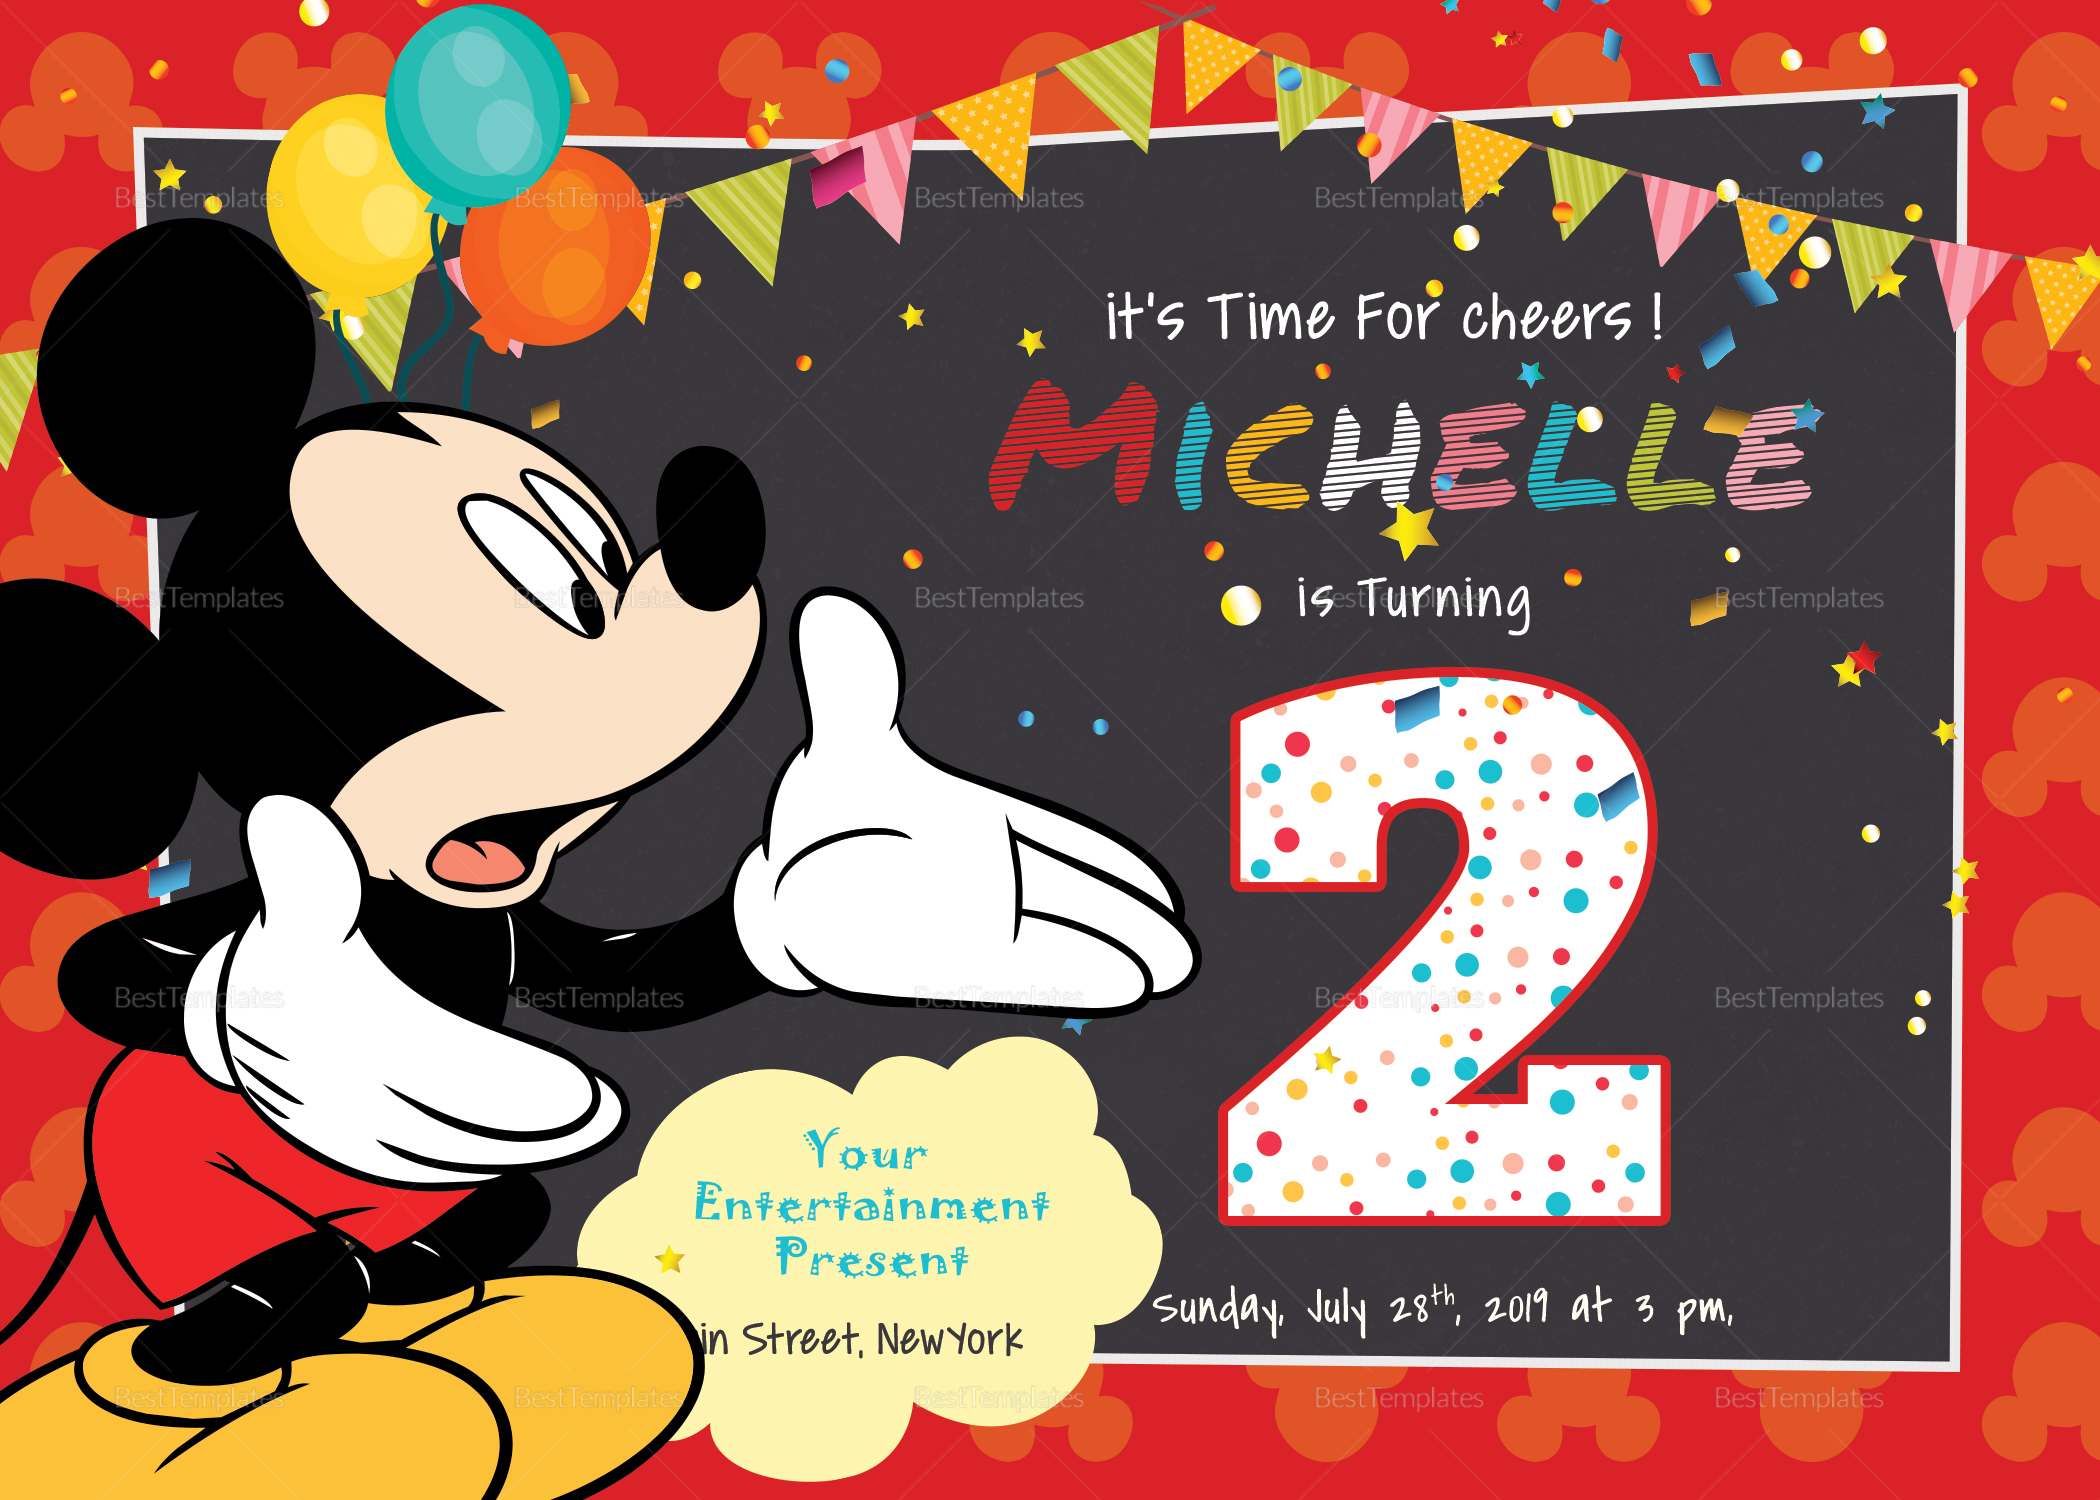 Great Mickey Mouse Birthday Invitation Card Design Template In Psd